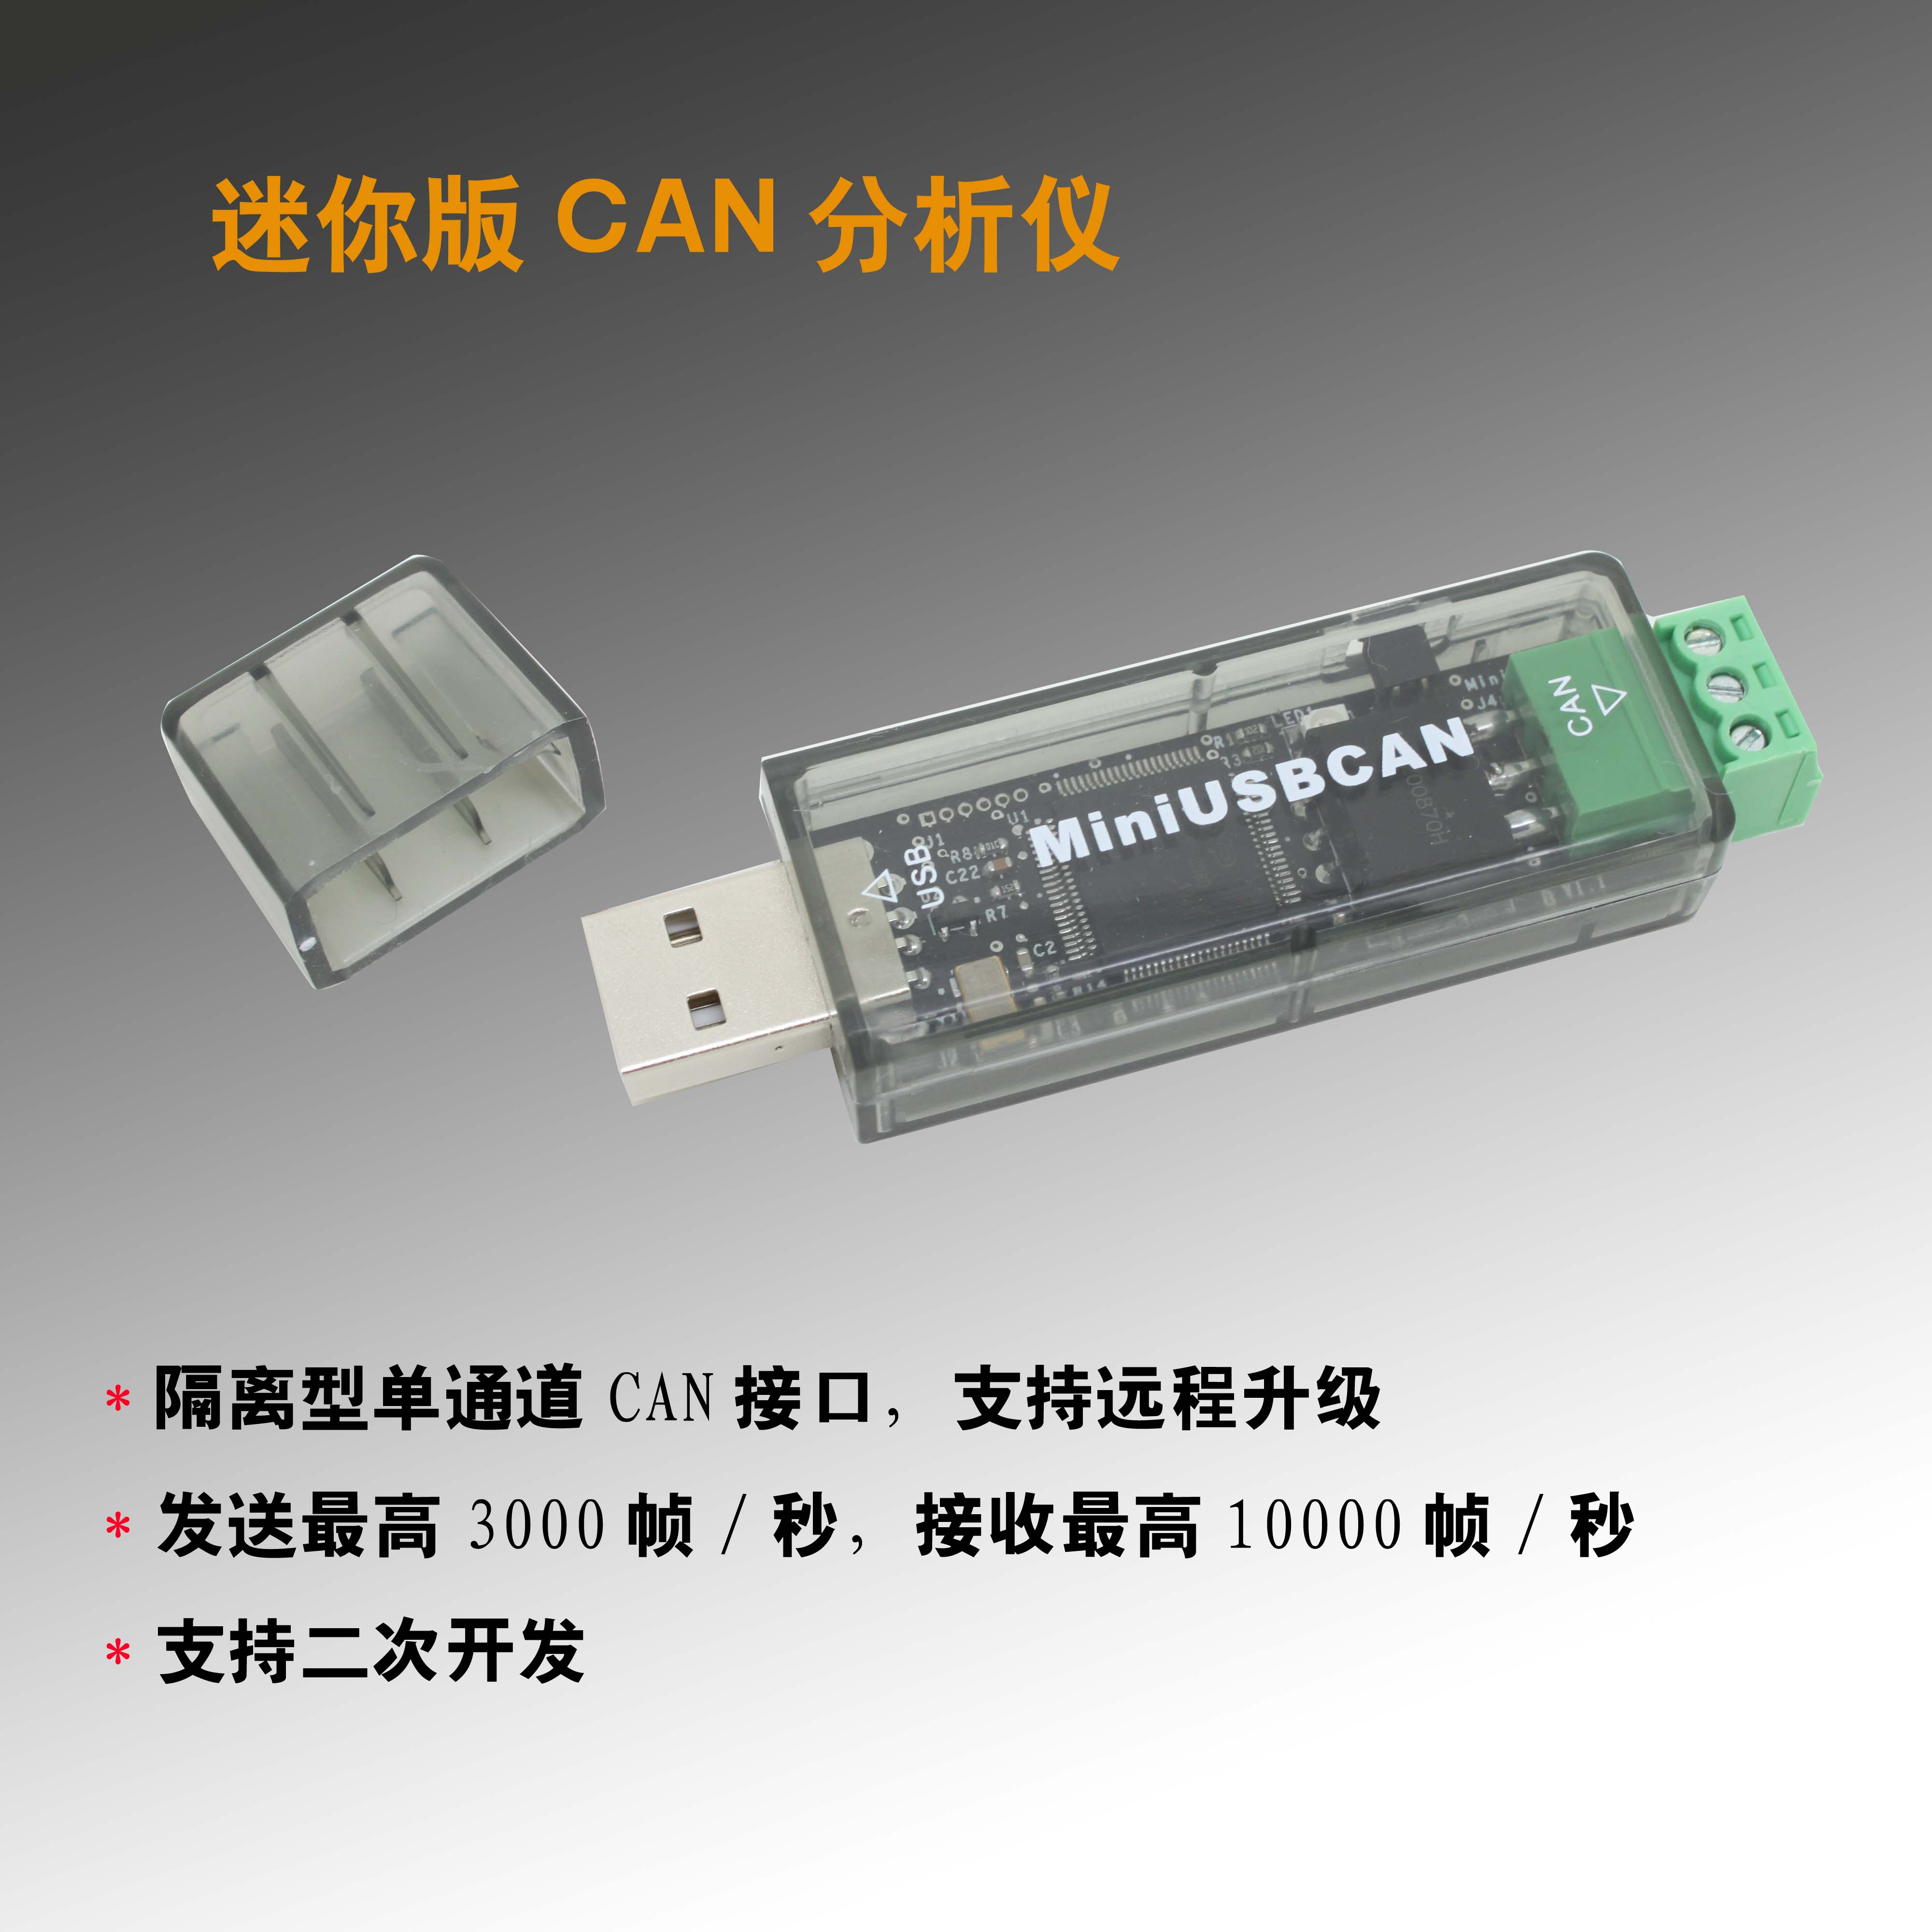 цена на Mini version USBCAN CAN analyzer supports the two development of CANopen